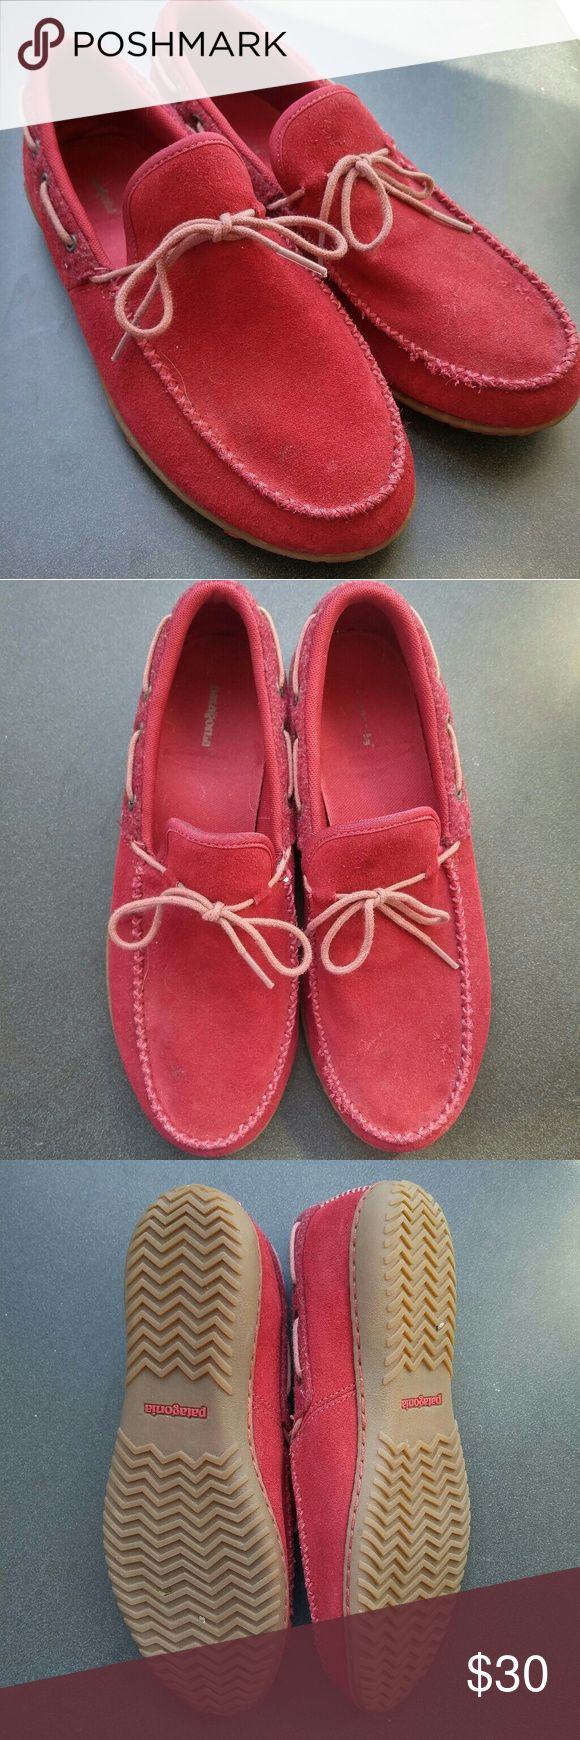 Patagonia Dark Earth Merrell Moccasins Rich red suede Patagonia moccasins with pink accent laces and stitching. Worn once or twice but are too big for me! They ar marked at an EU39 US 8.5 but fit more like a 9 or 9.5. There are 2 minor flaws in the suede as pictured.  Smoke free home shared with a small dog. Patagonia Shoes Moccasins